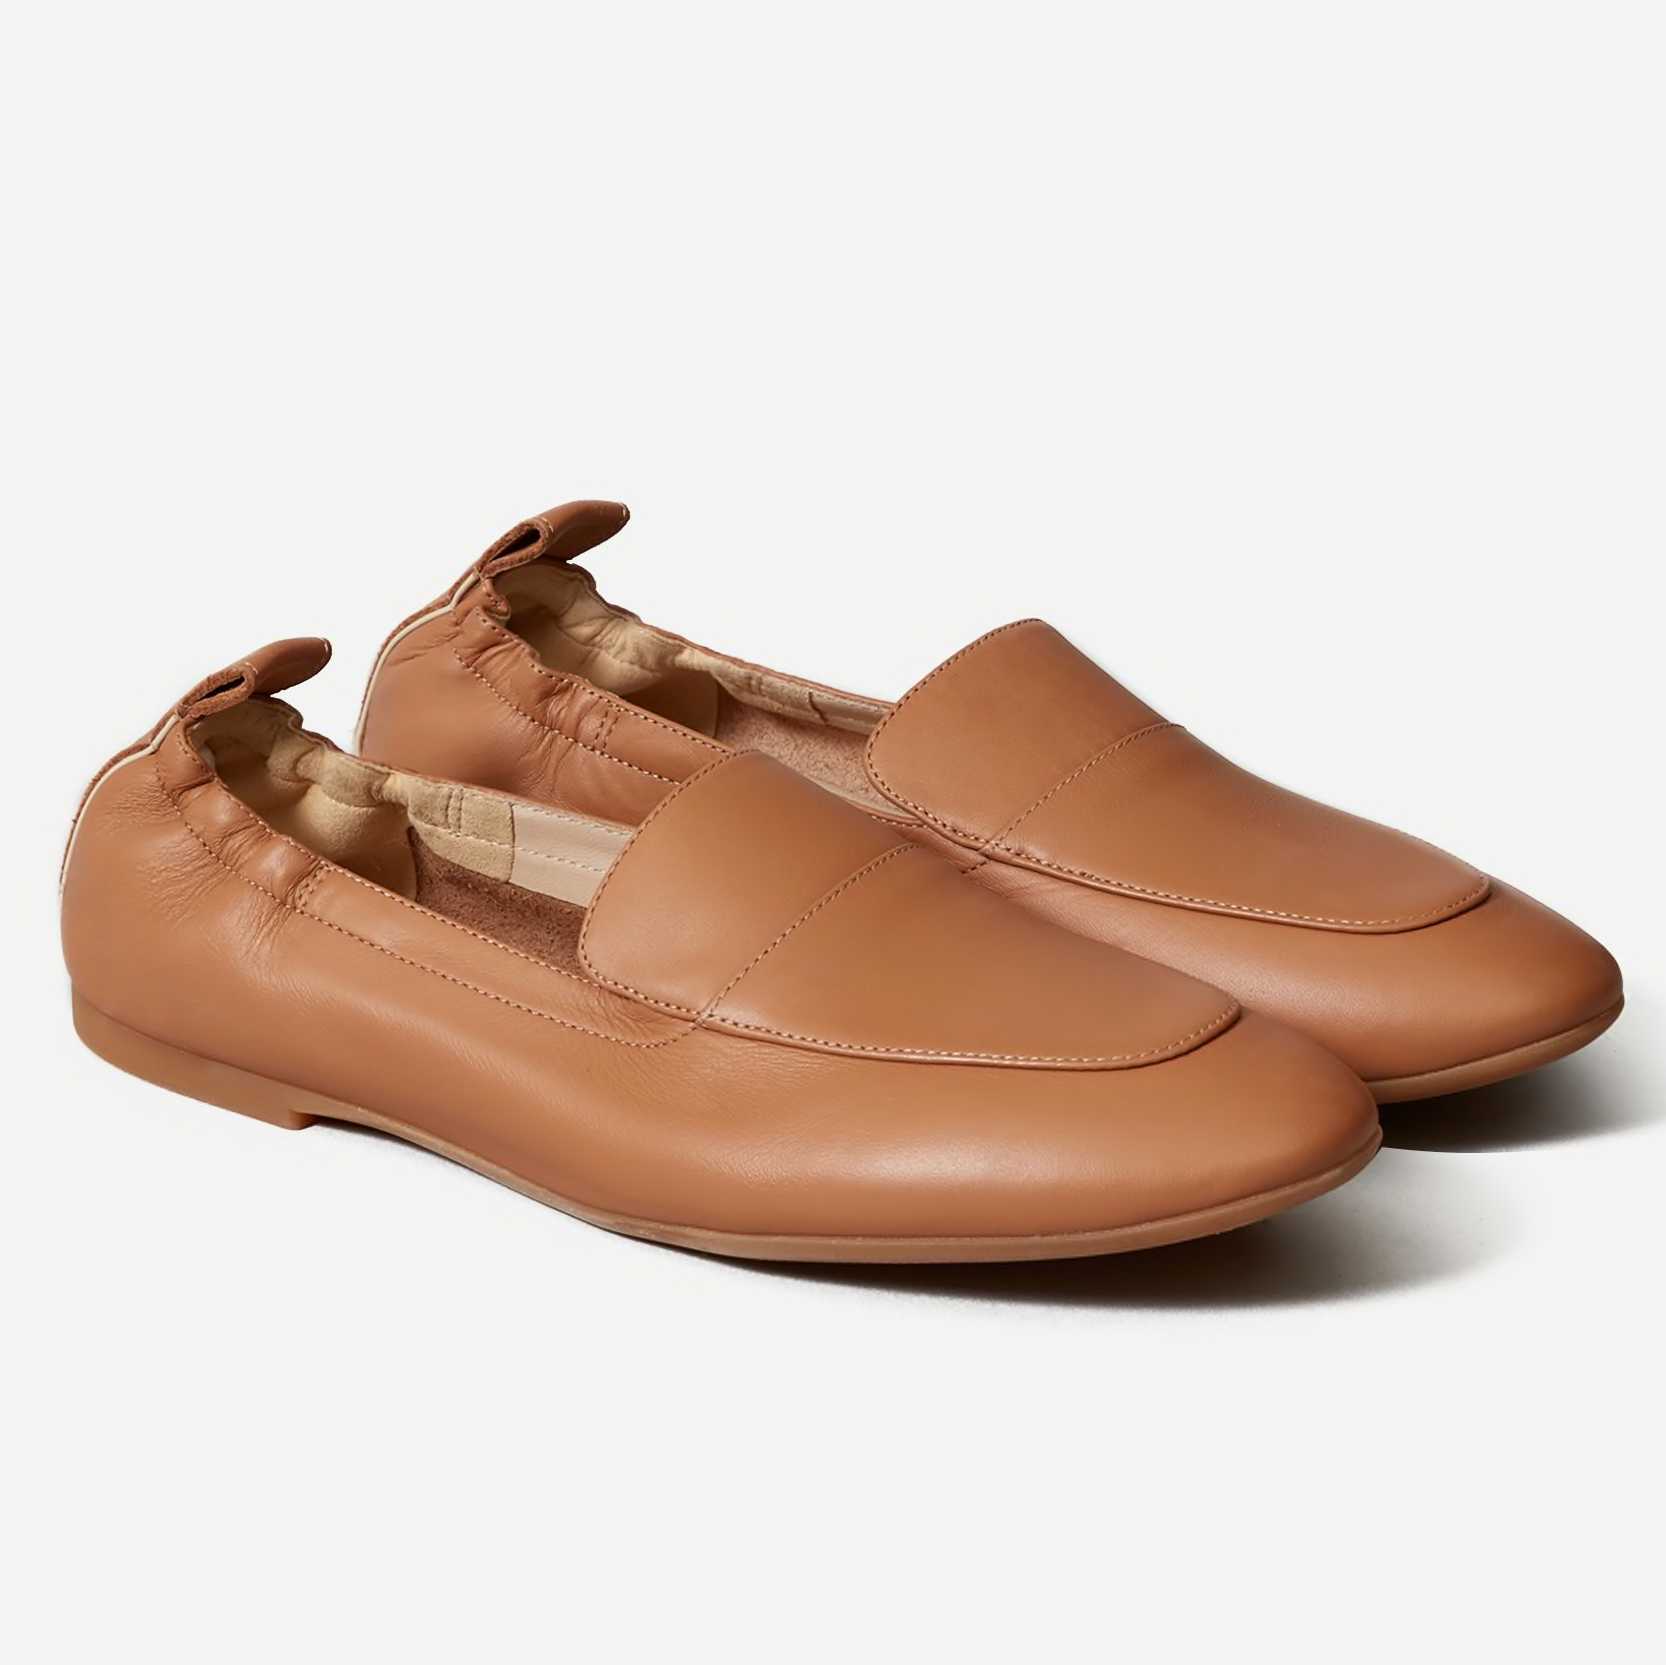 everlane the day loafer review